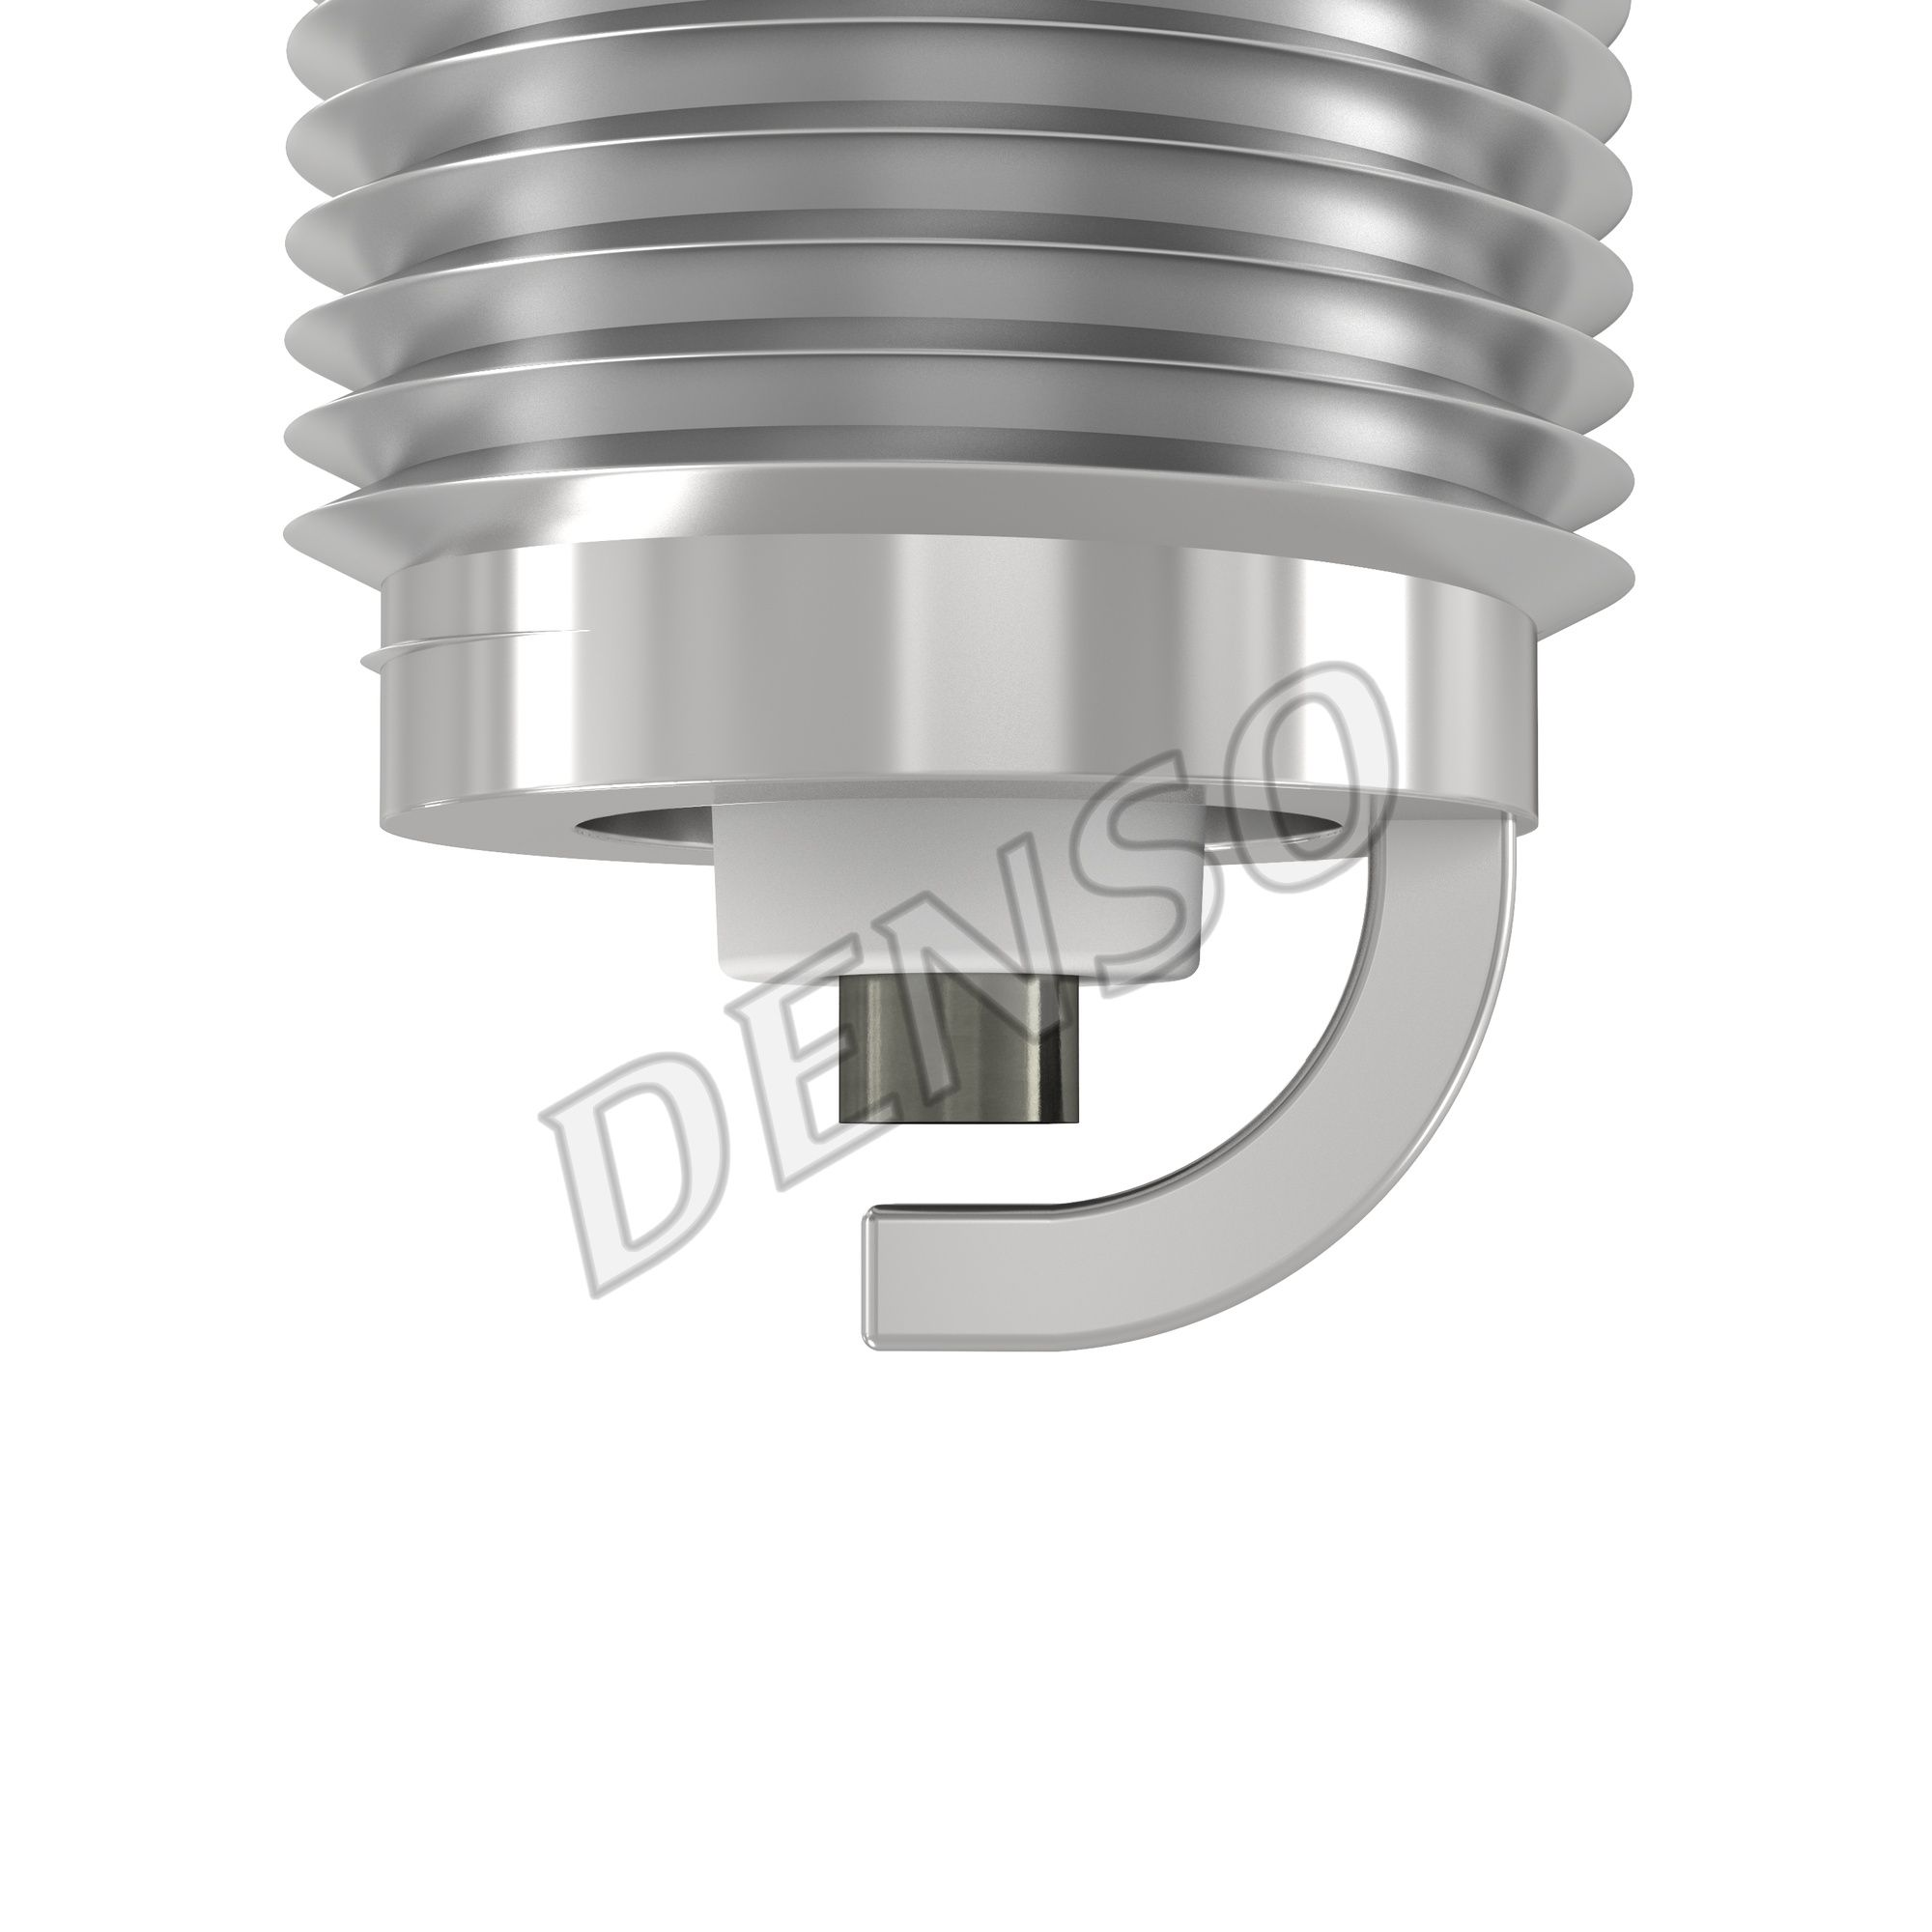 D12 DENSO from manufacturer up to - 24% off!